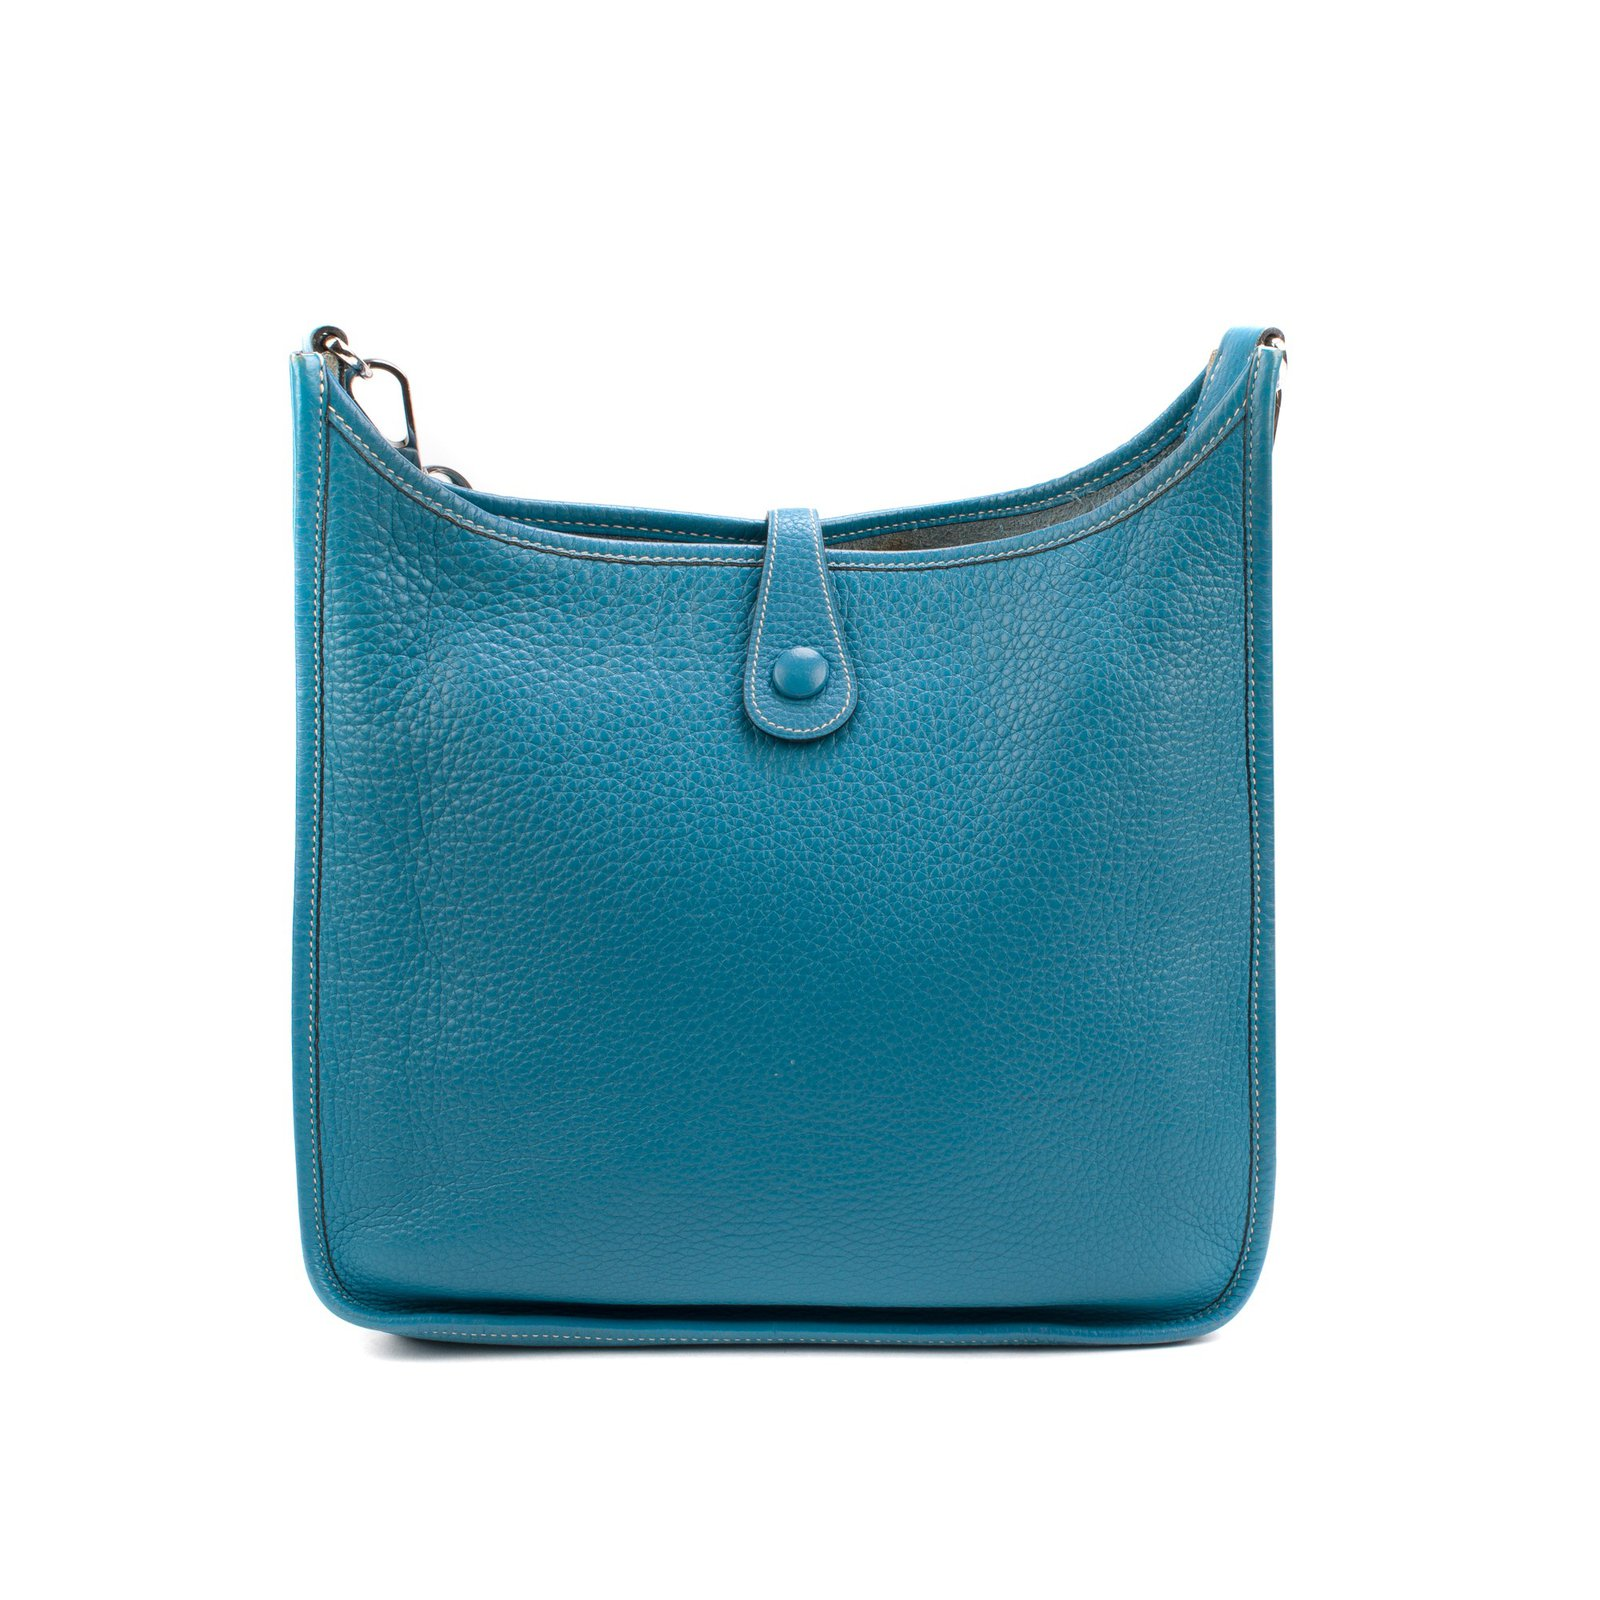 5db873c8e271 Hermès Hermès Evelyne bag in blue clemency taurillon in very good ...